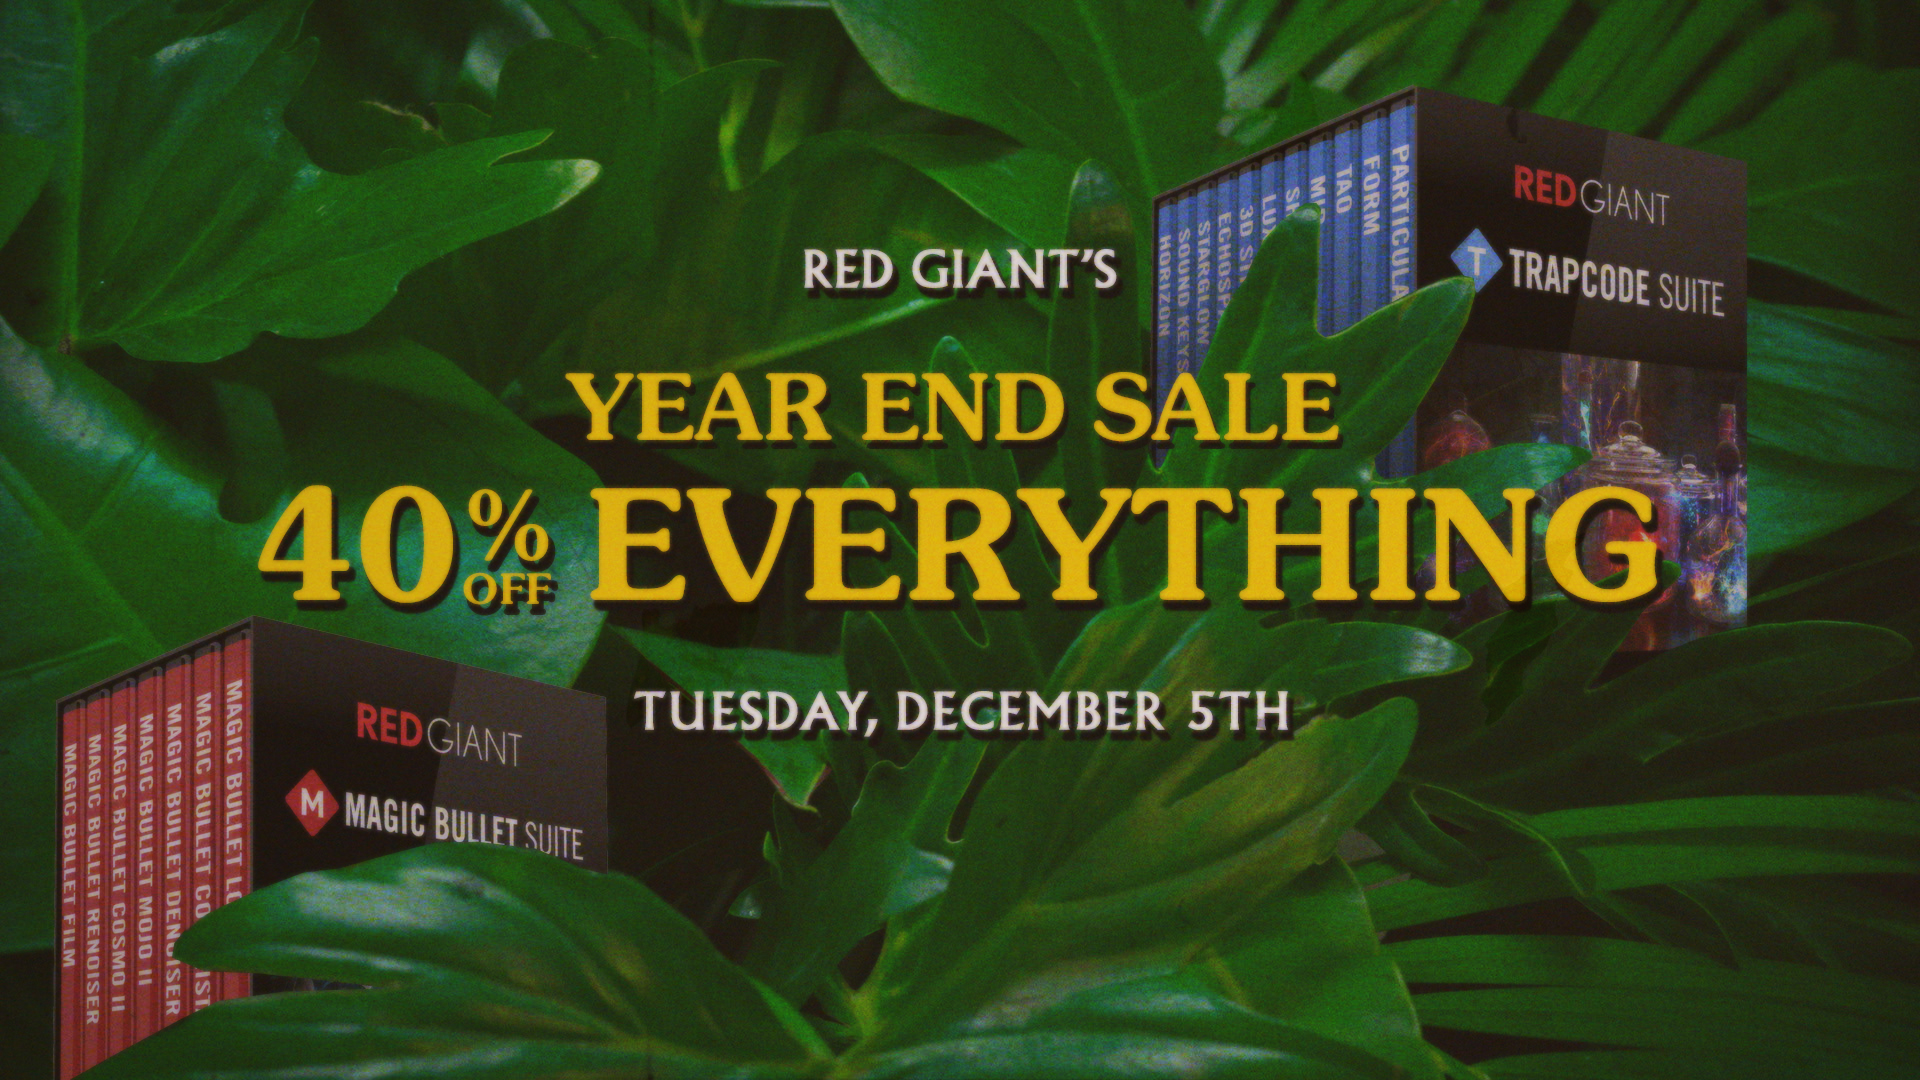 News: Red Giant/Trapcode One Day Sale – 40% Off Everything – December 5th, 2017